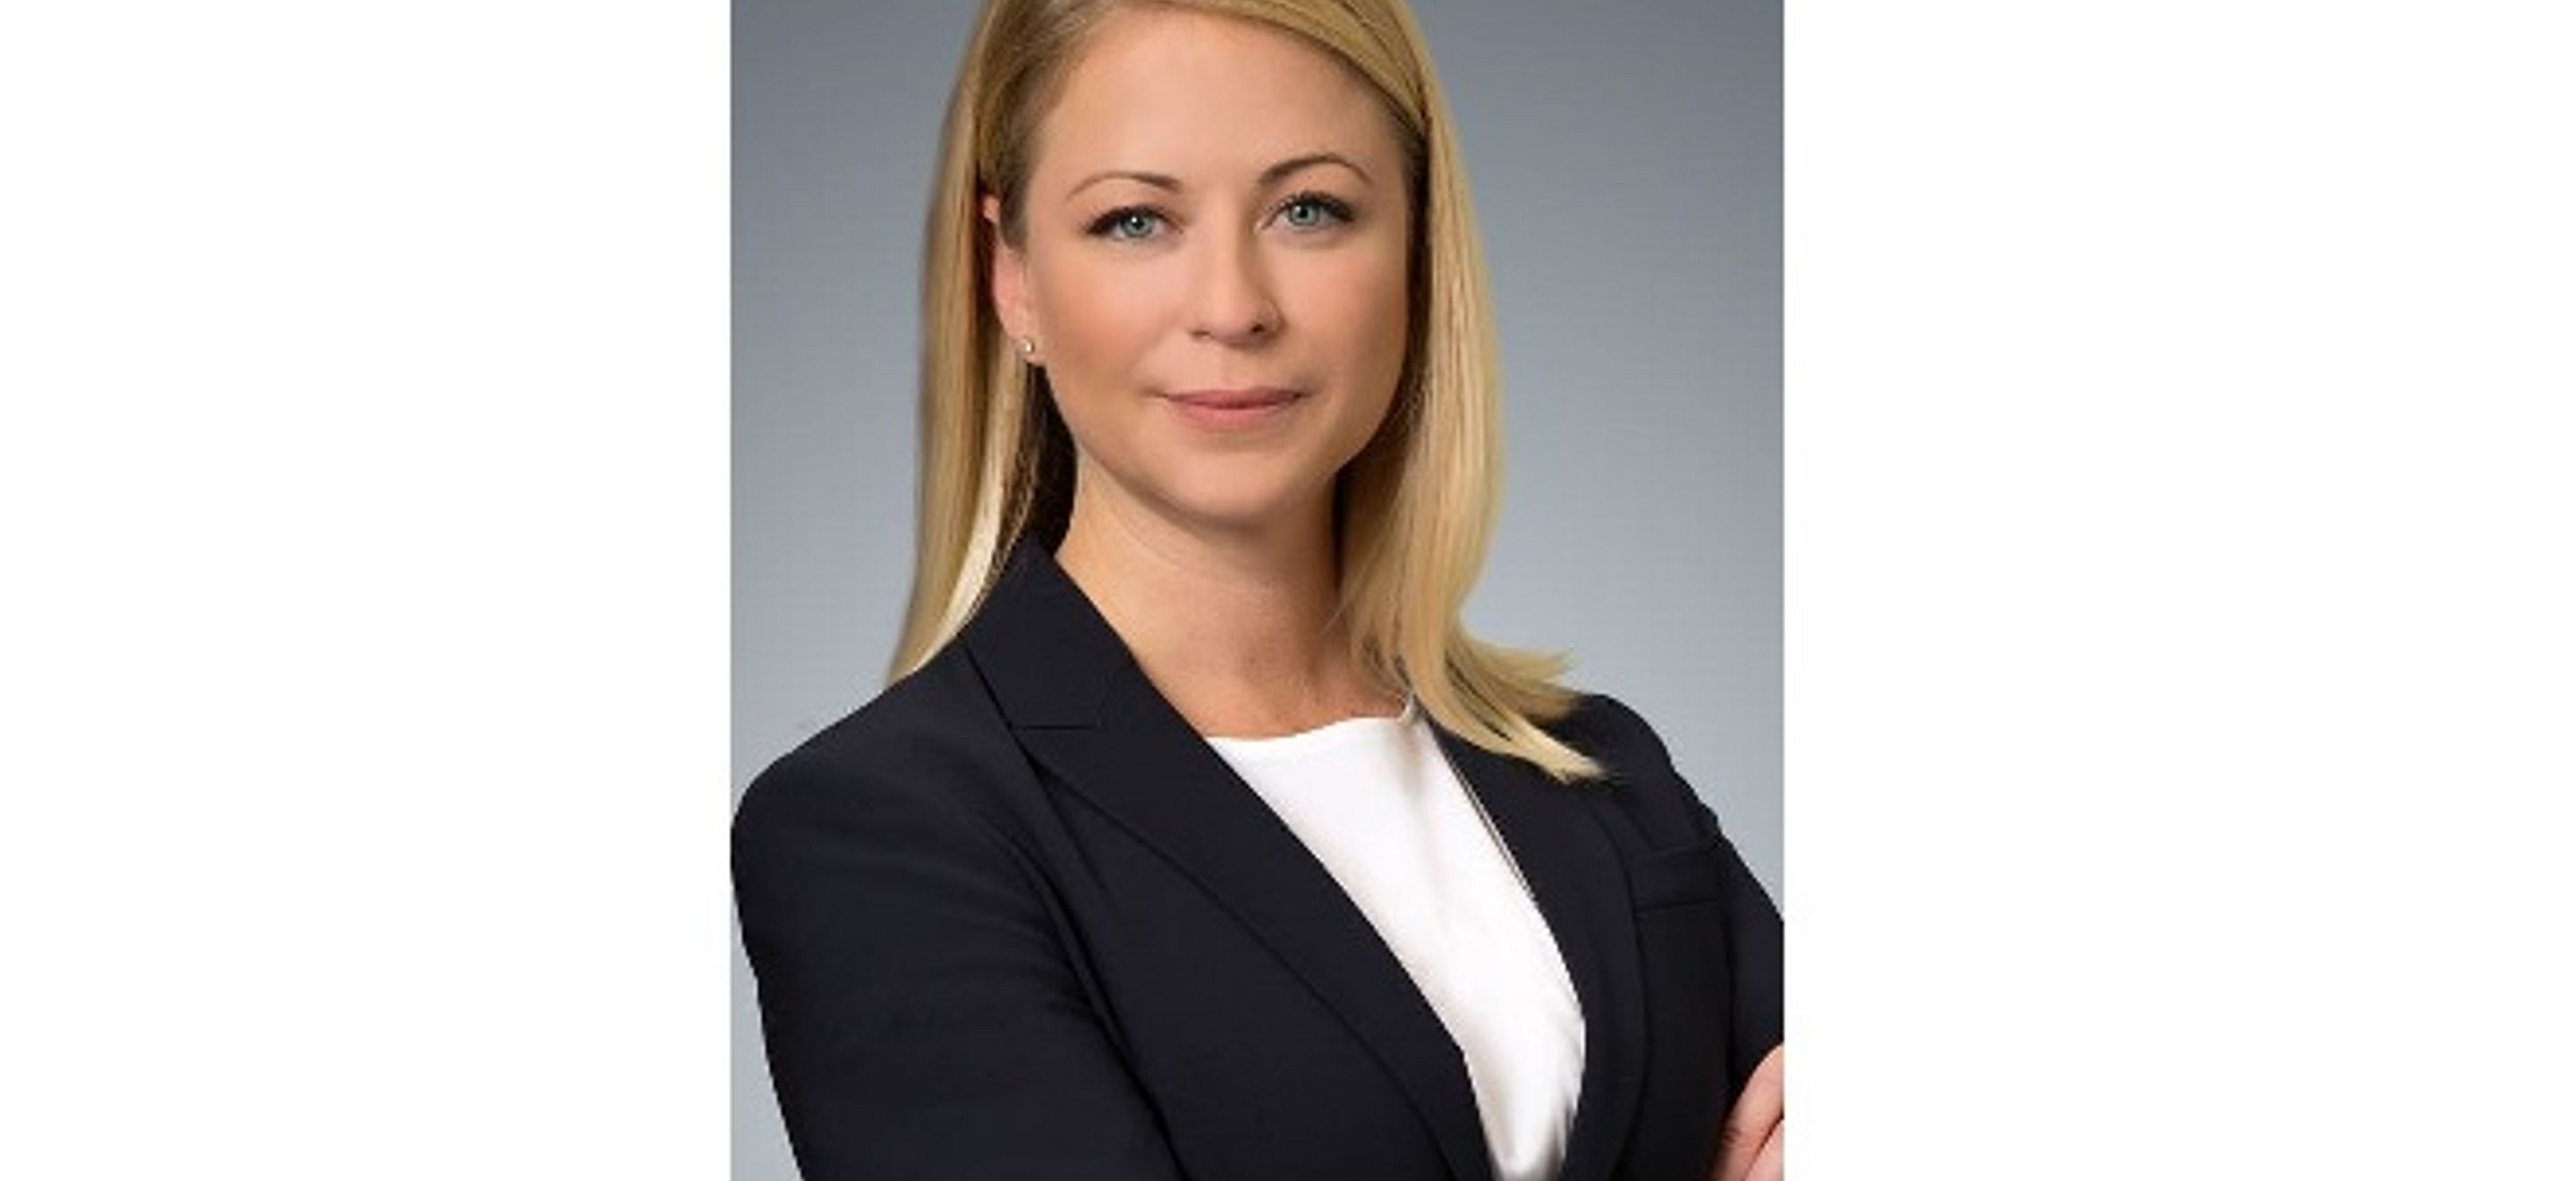 A headshot of IRAP alumna Alexis Federico. She is a white woman with straight blonde shoulder-length hair and blue eyes. She wears a white blouse with a black suit jacket and has her arms crossed in front of her.